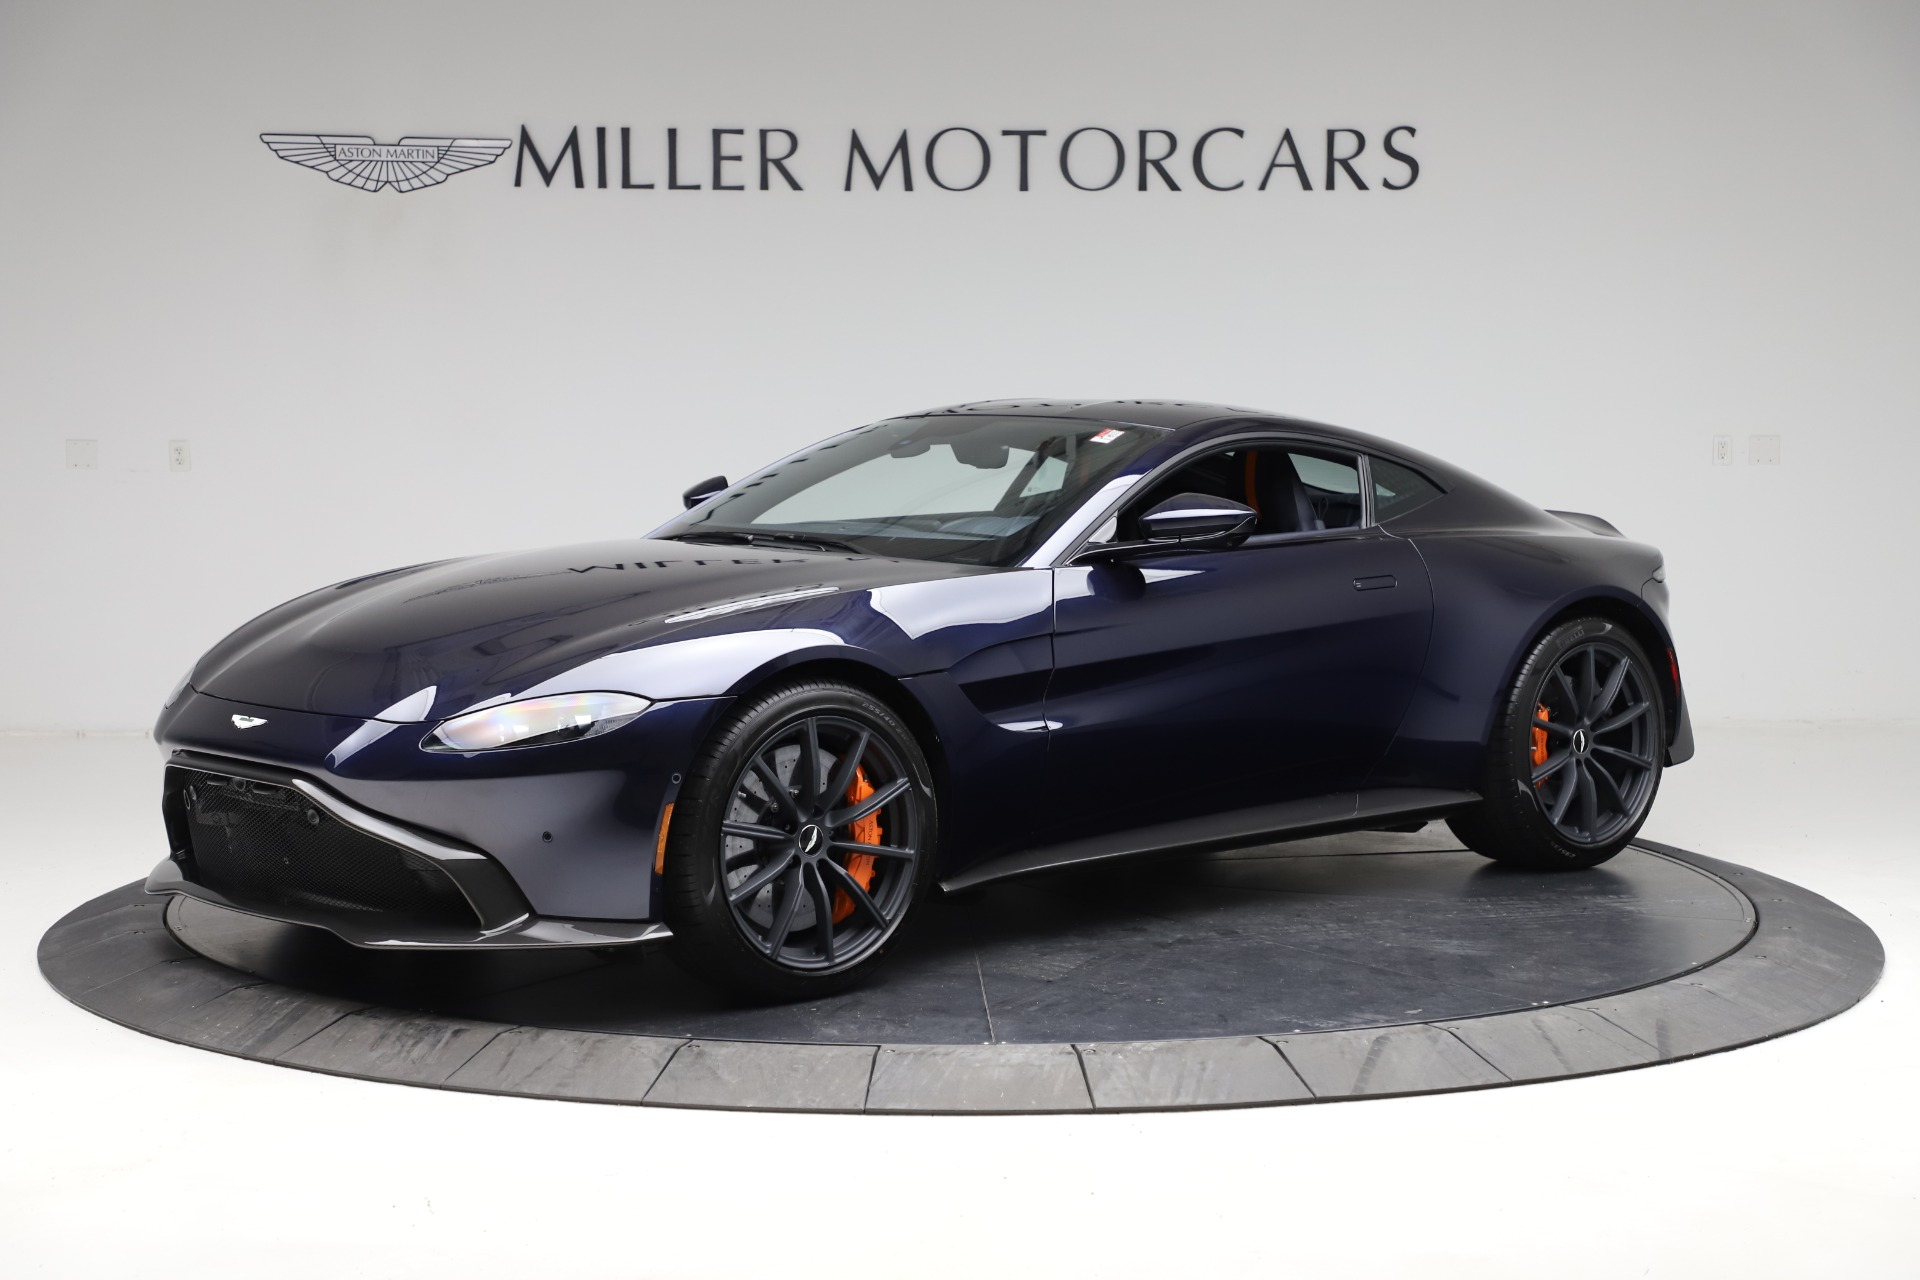 New 2020 Aston Martin Vantage Amr Coupe For Sale 204 791 Miller Motorcars Stock A1453